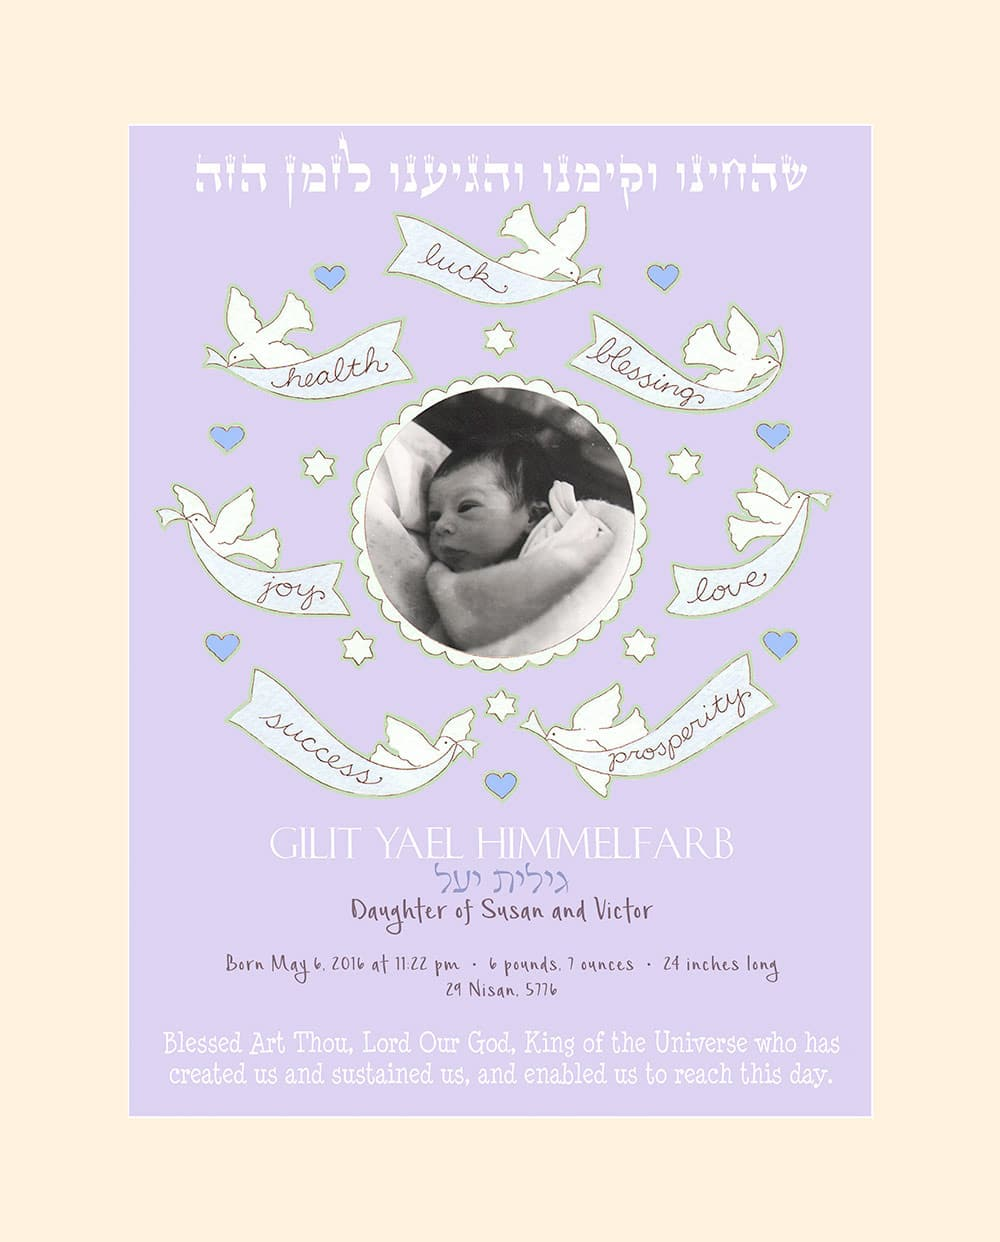 Baby Girl Blessing Lavender Baby Wall Art G-BG-12c by Mickie Caspi